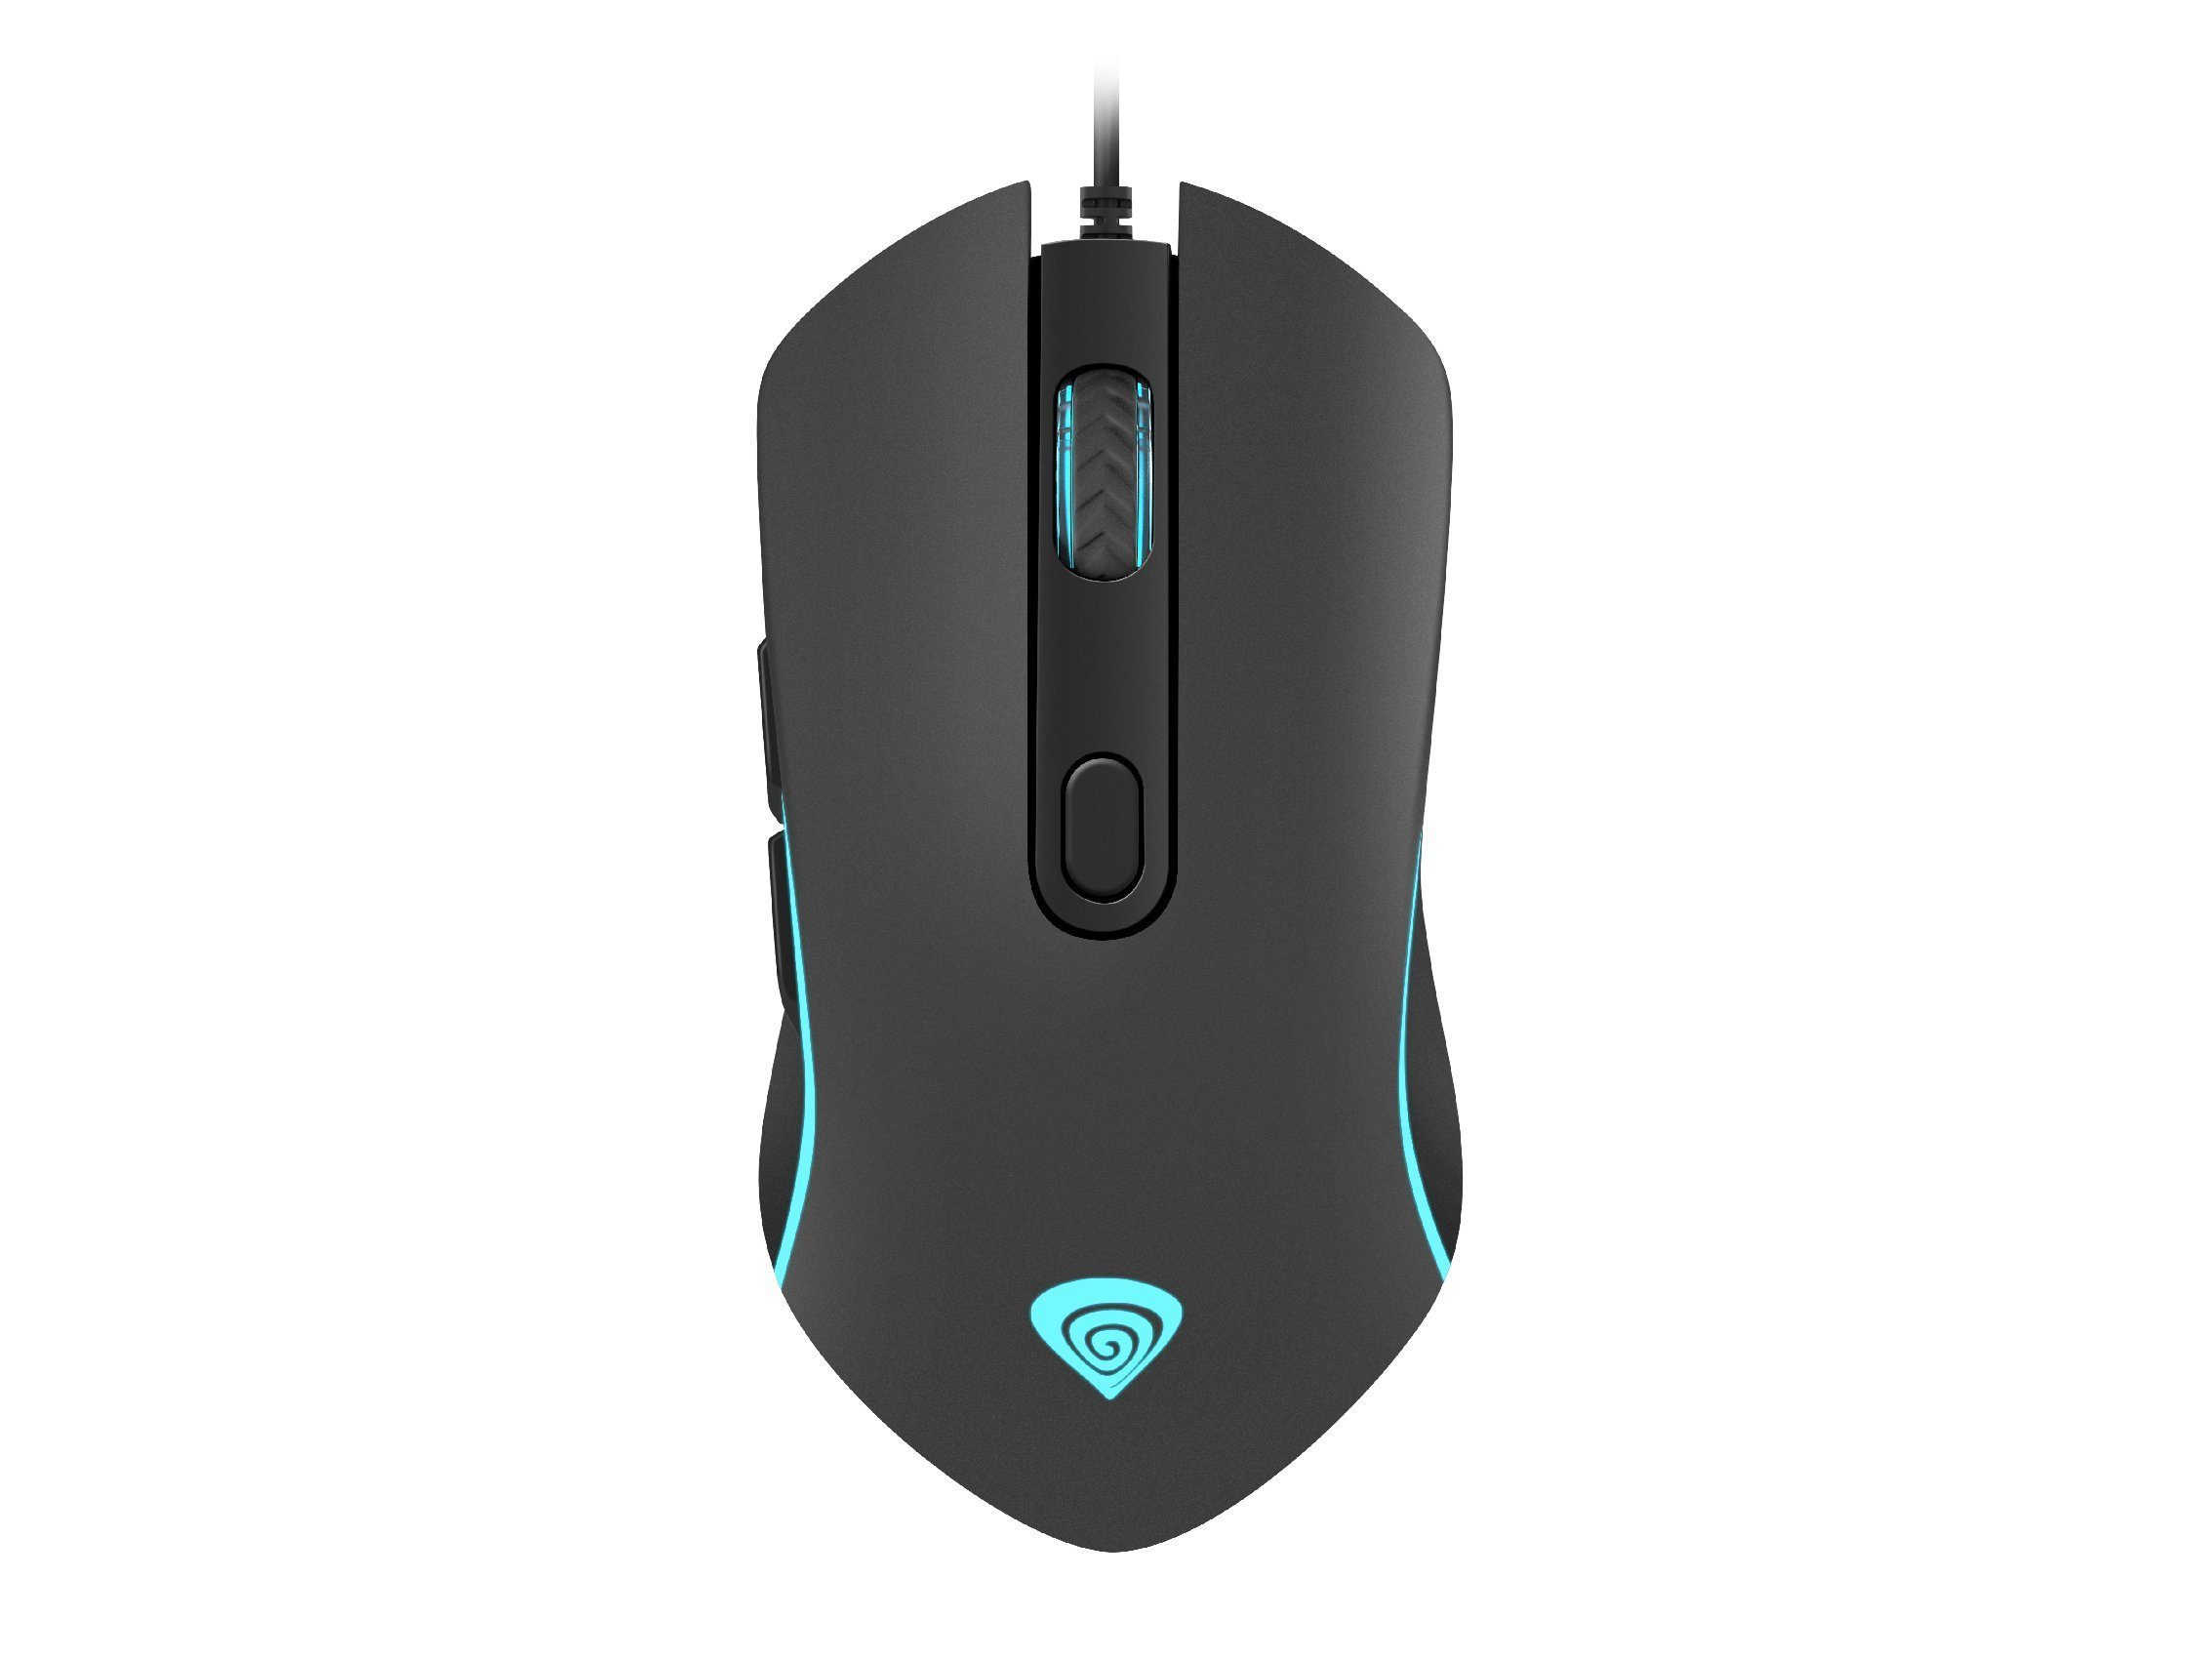 геймърска мишка Gaming Mouse KRYPTON 150 - 2400dpi, 7 colors backlight - NMG-1410